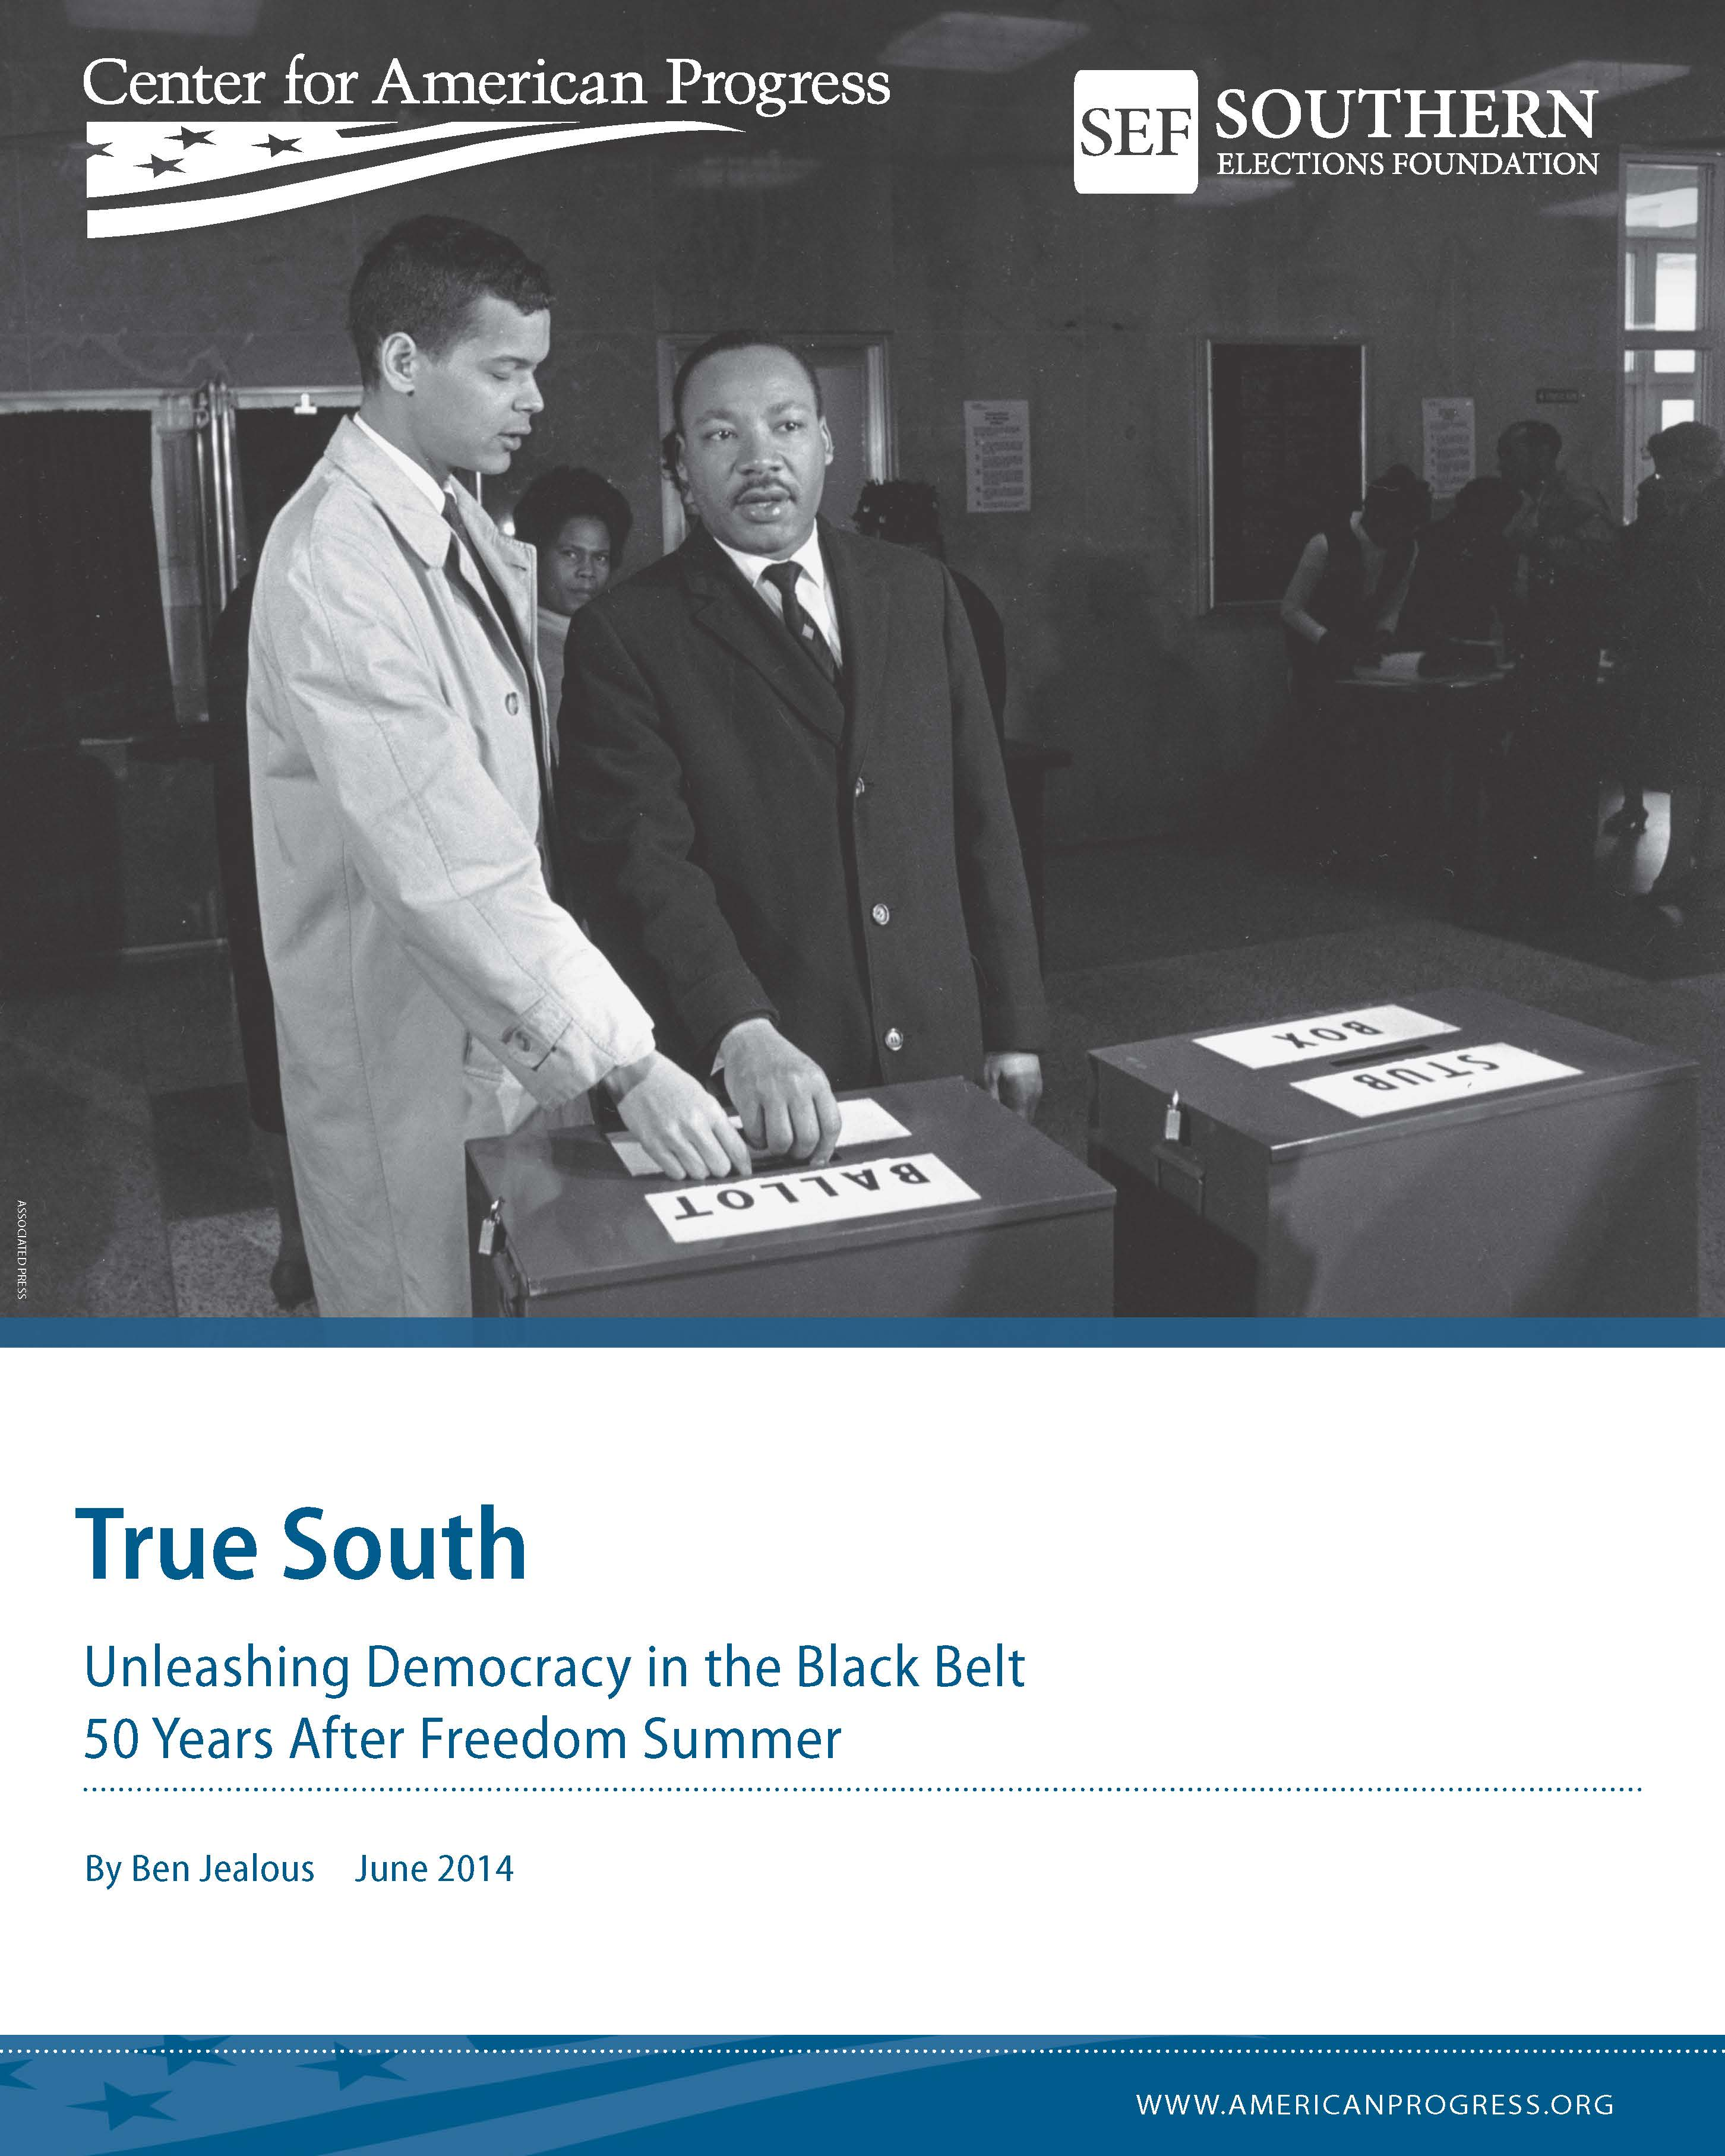 True South: Unleashing Democracy in the Black Belt 50 Years After Freedom Summer